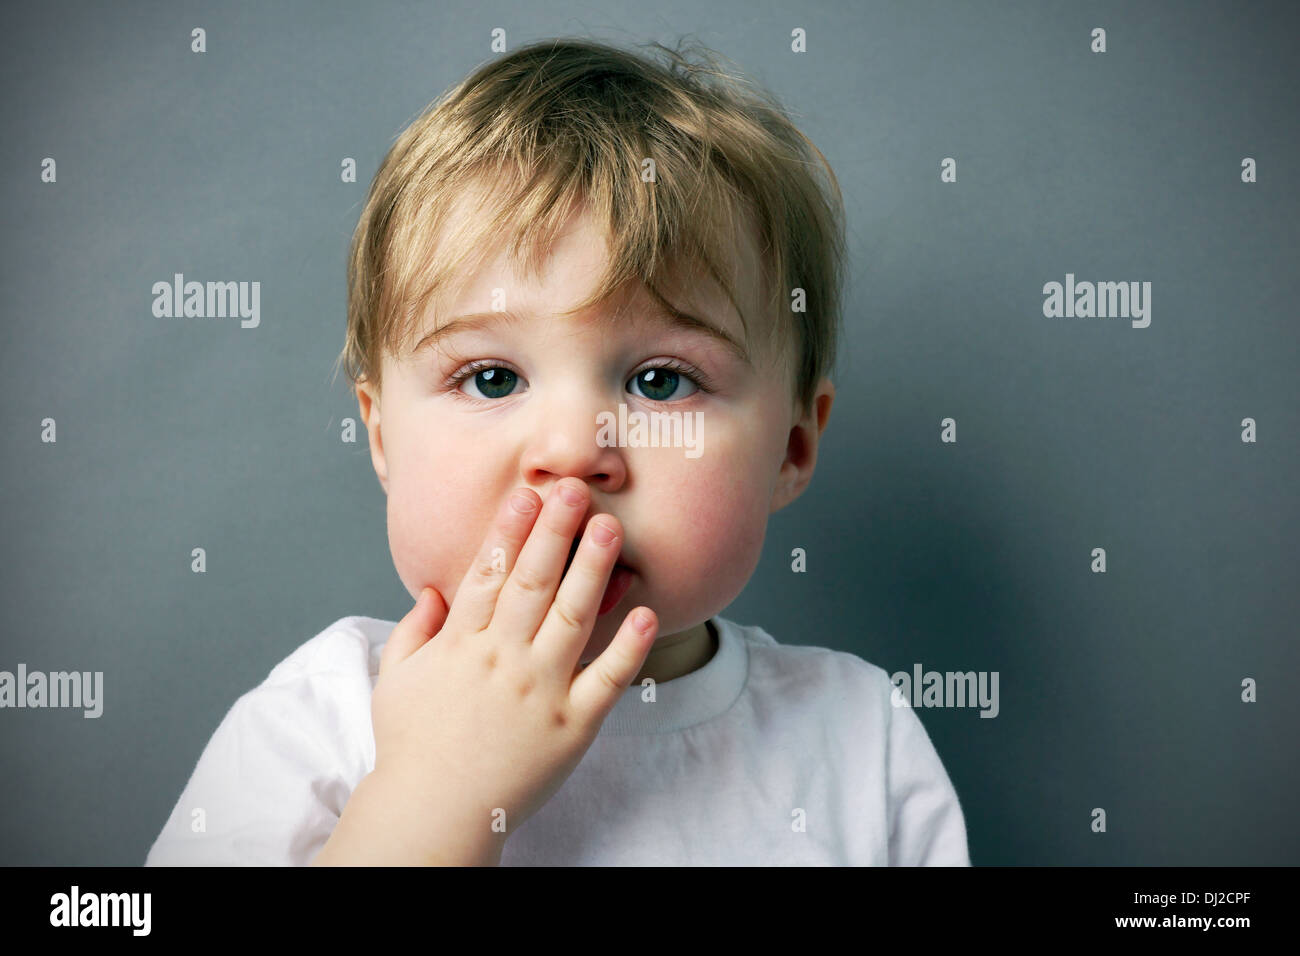 oops! cute and funny little blond boy or toddler with hand in front of mouth - Stock Image